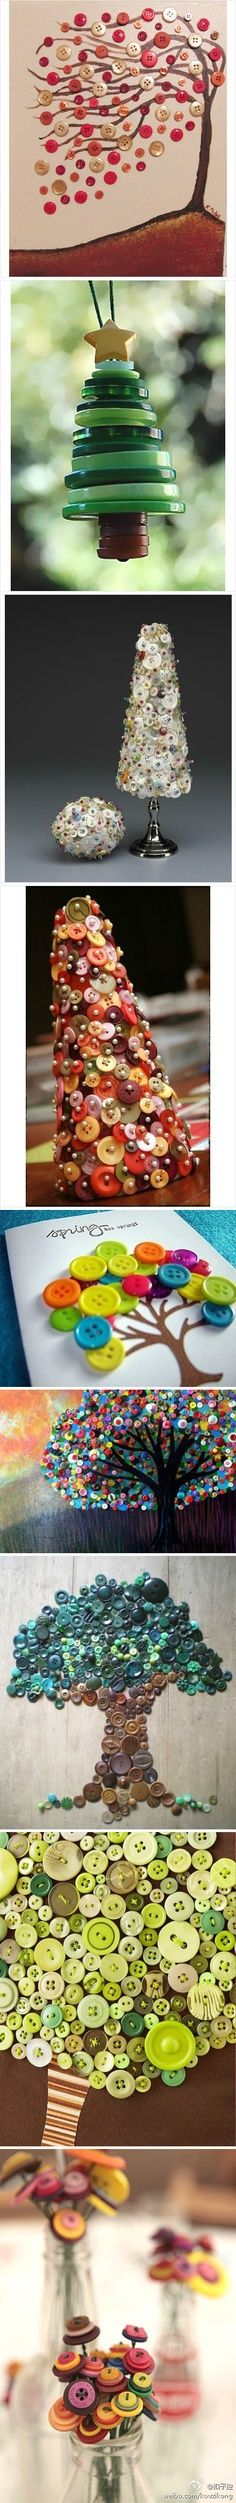 diy craft idea